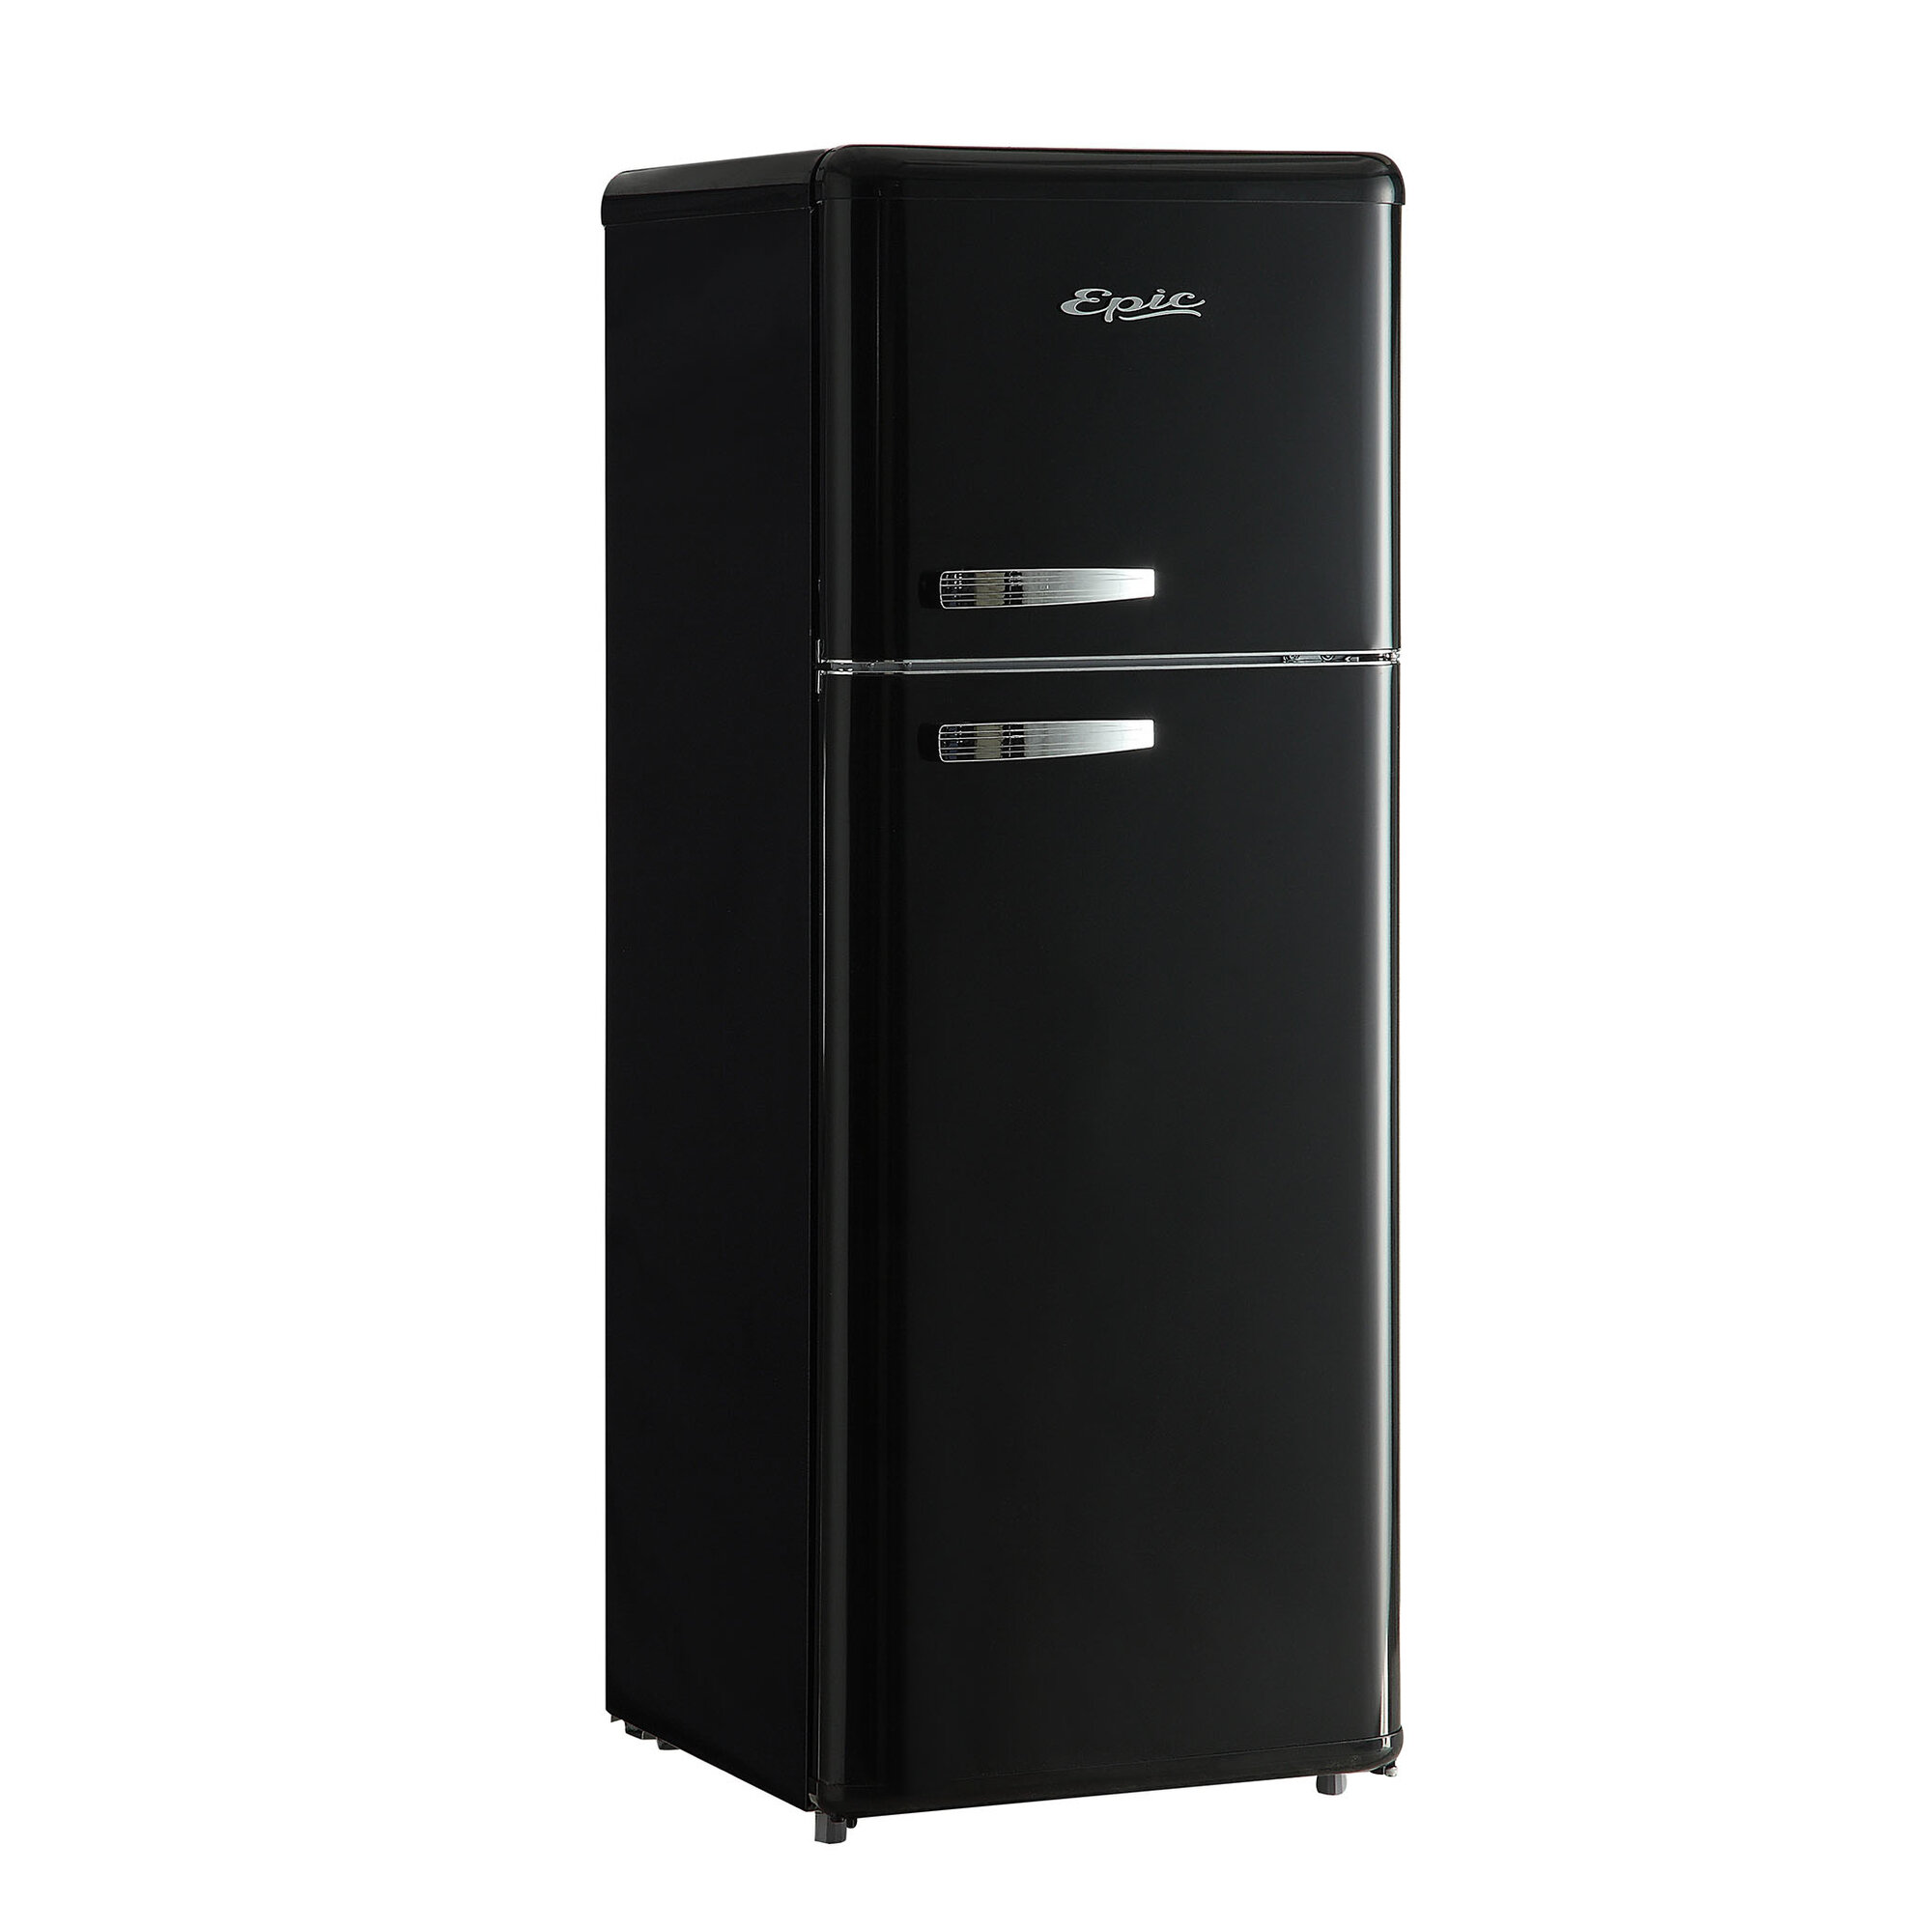 Compact Refrigerator With Freezer & Reviews - Wayfairca